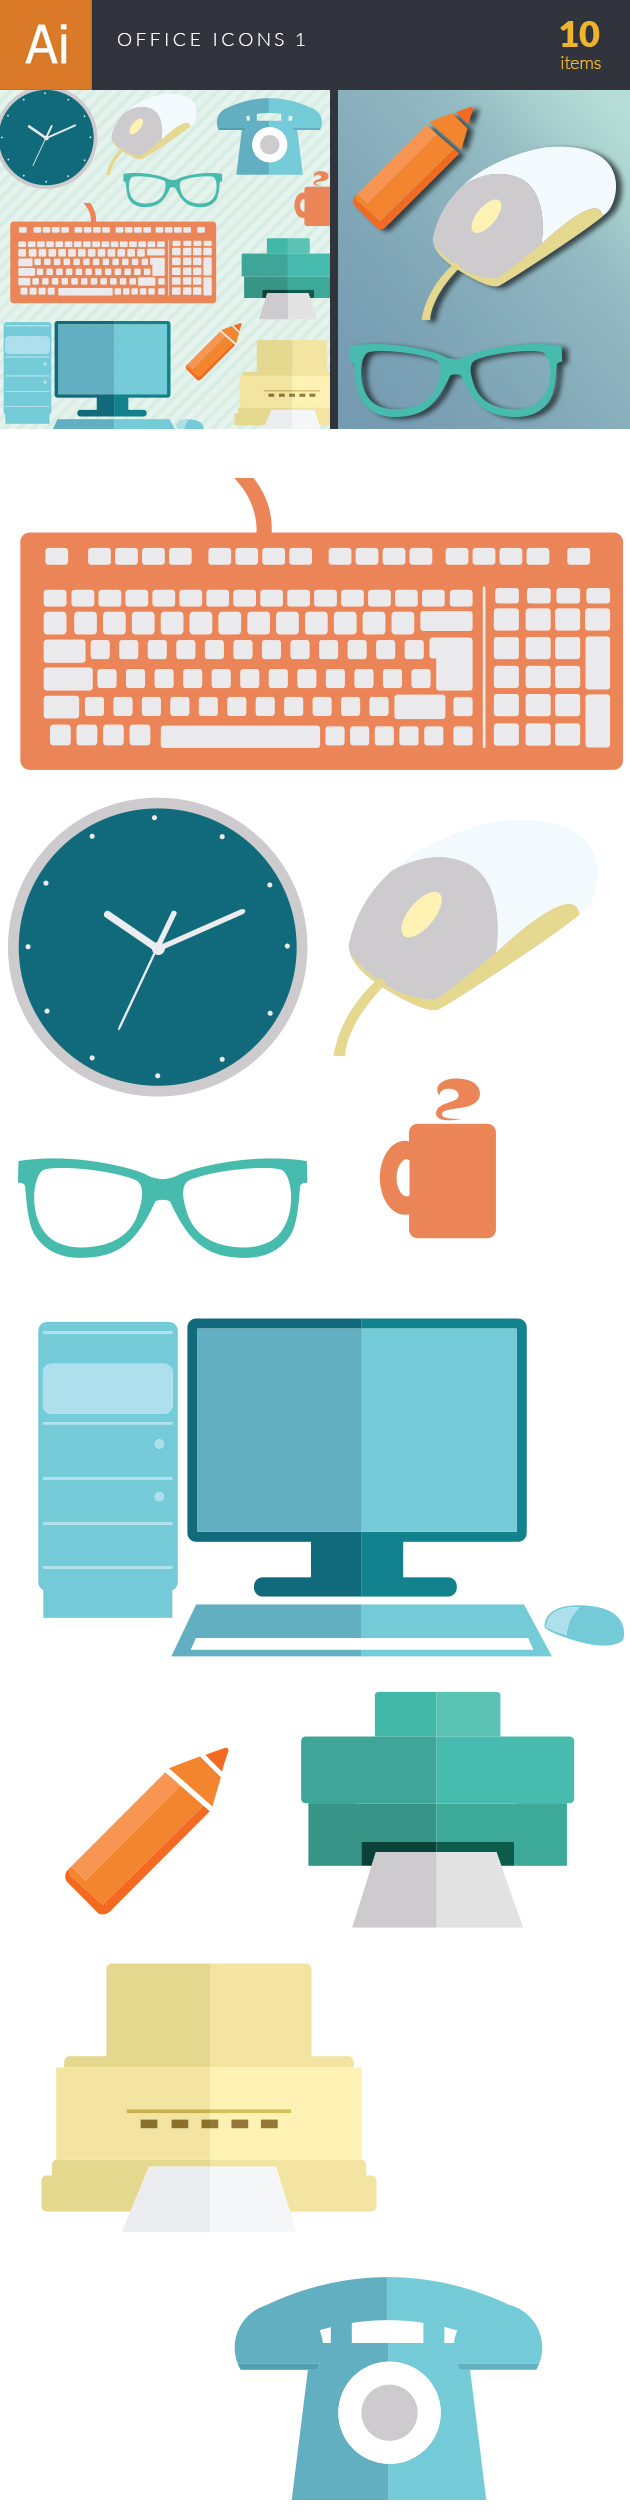 Office Icons Vector Set 1 6